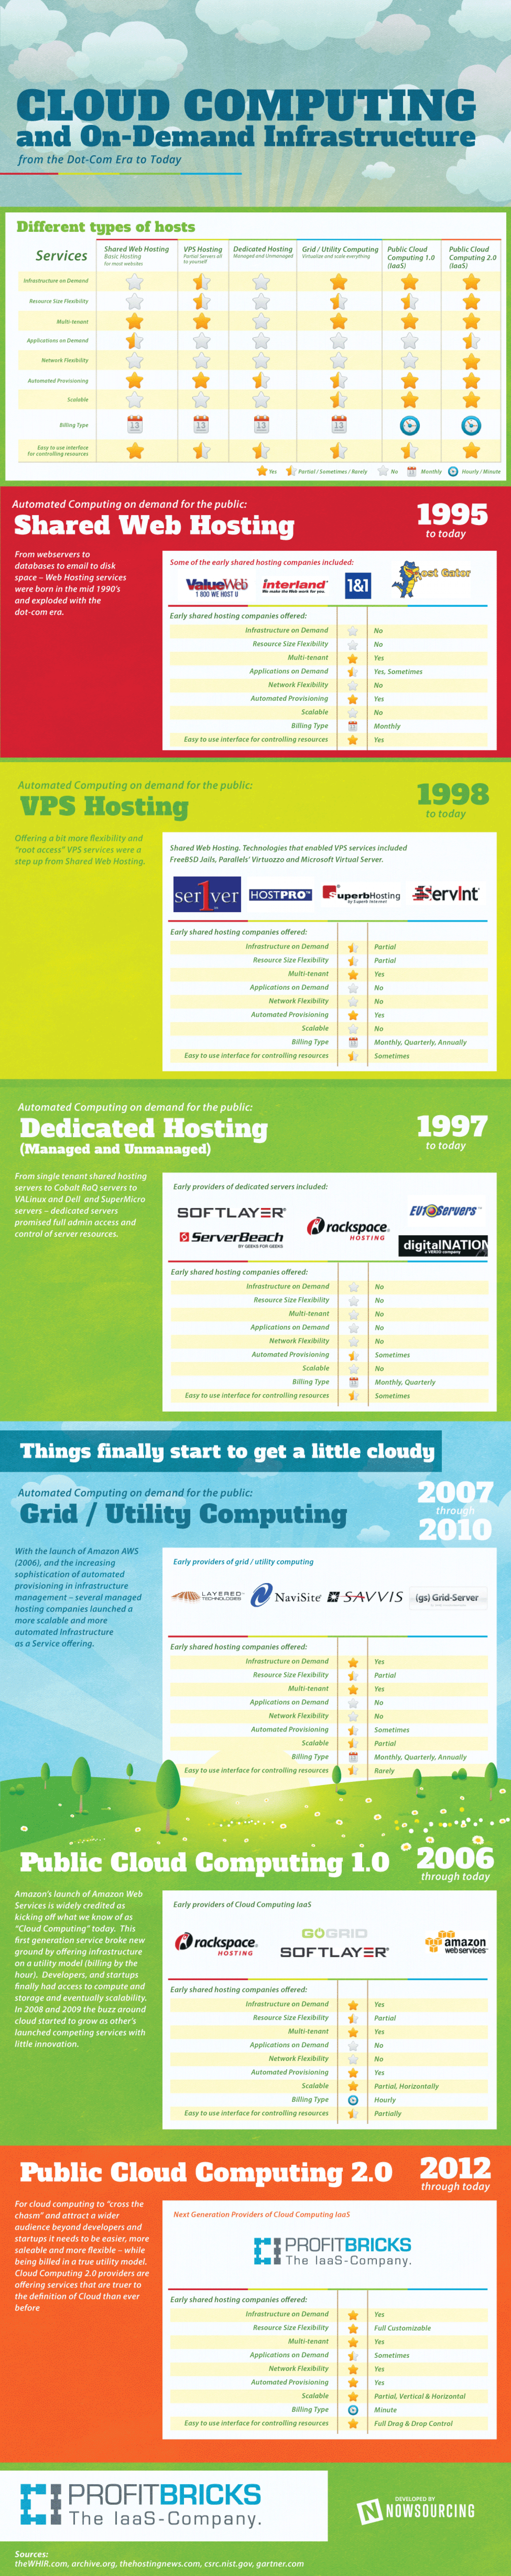 The History of Cloud Computing Infographic